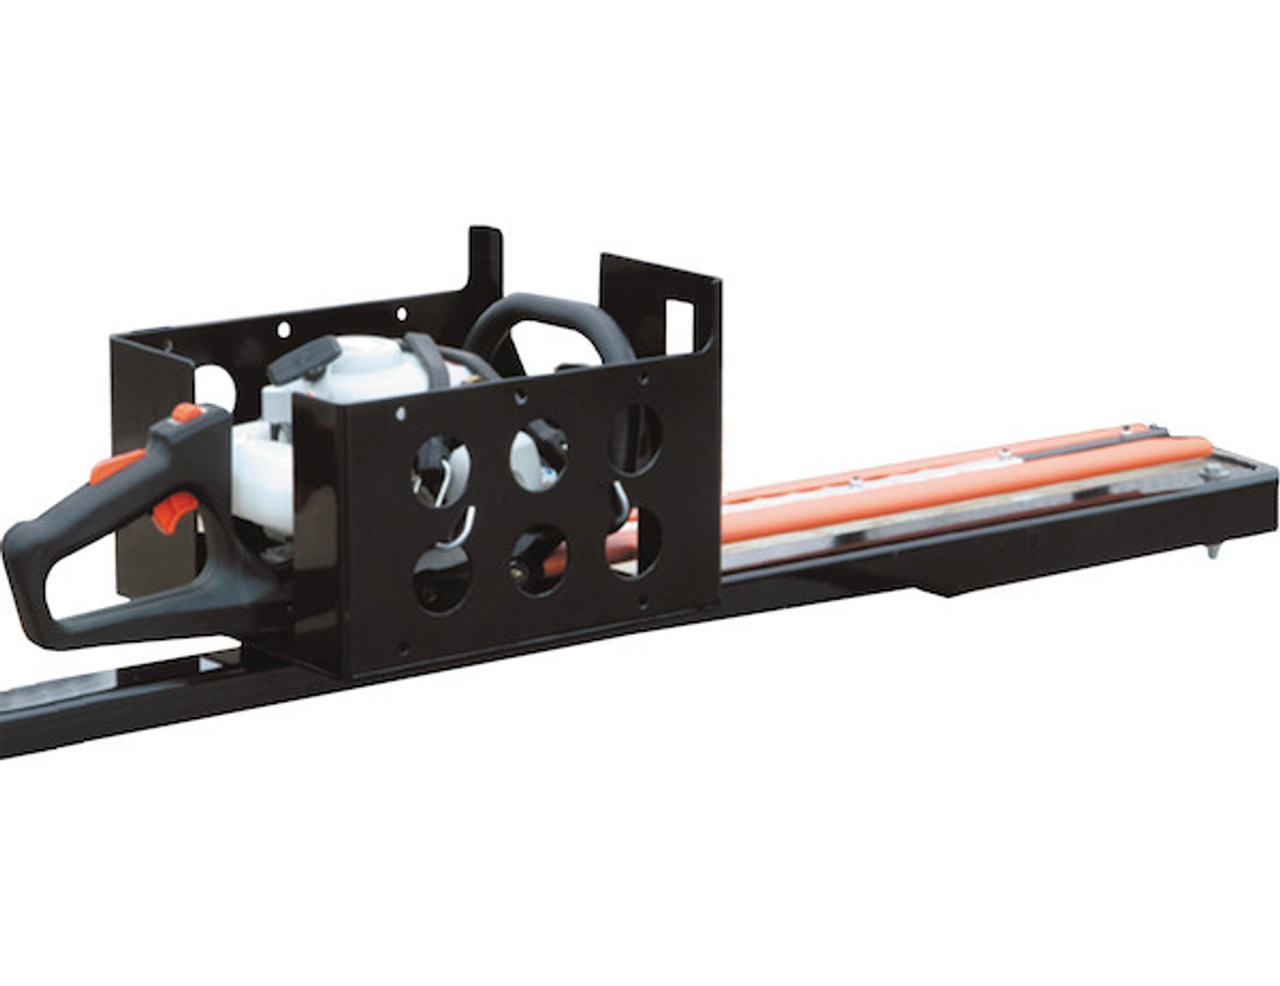 Buyers LT15 Multi-Rack storage for hedge trimmers, chainsaws and blowers for Trailers and Trucks Picture # 8